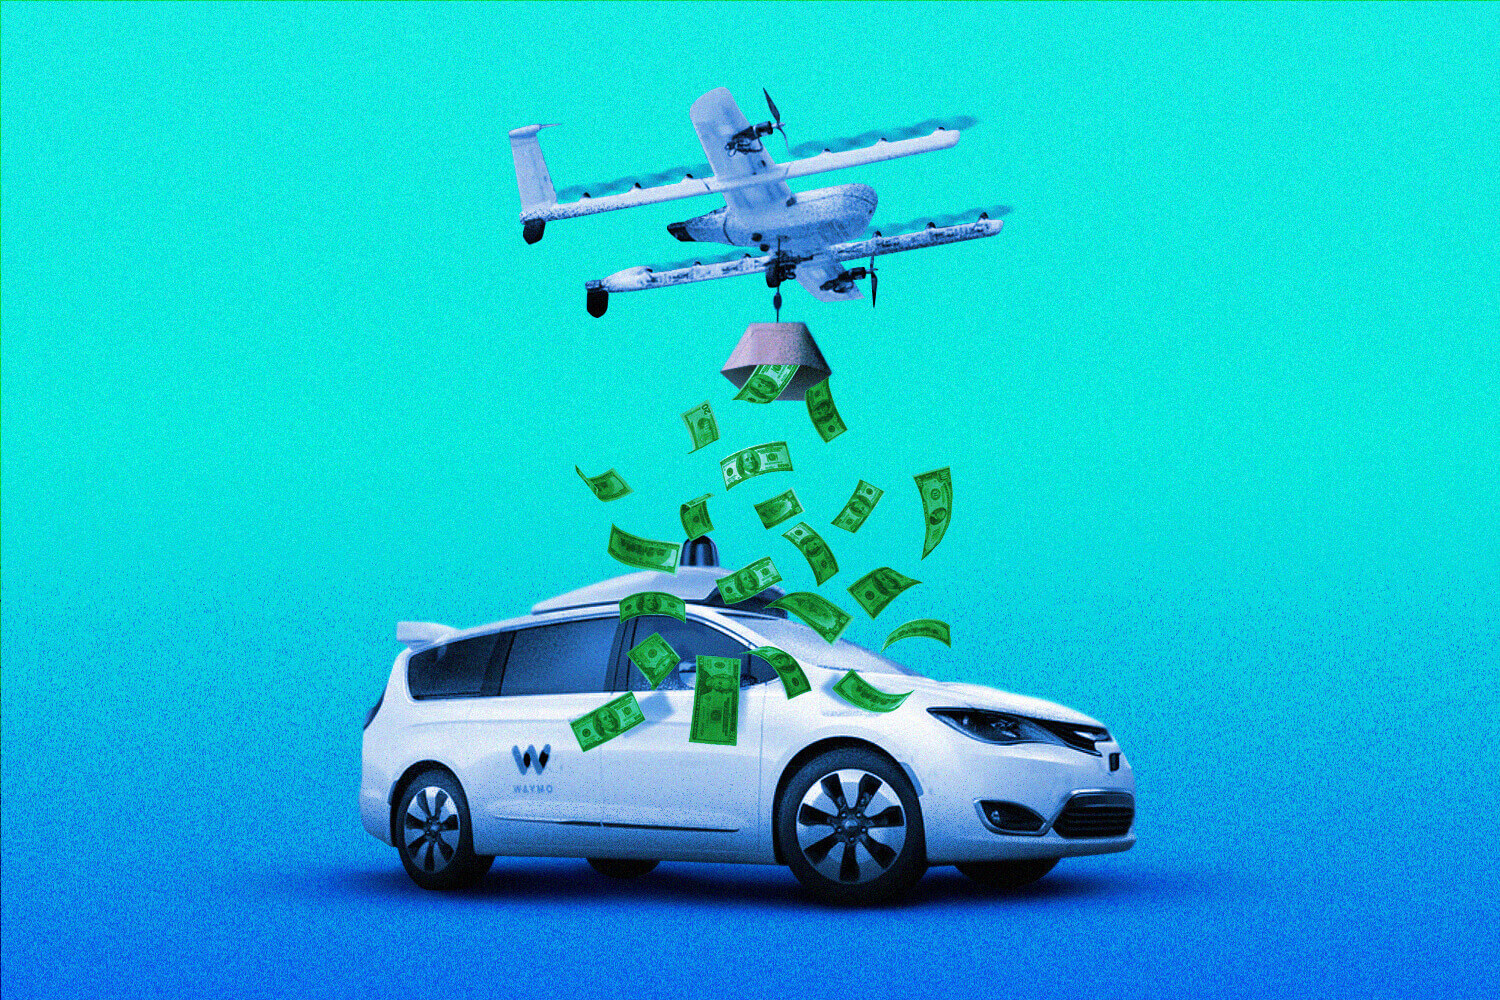 wing drone spilling cash over a Waymo van